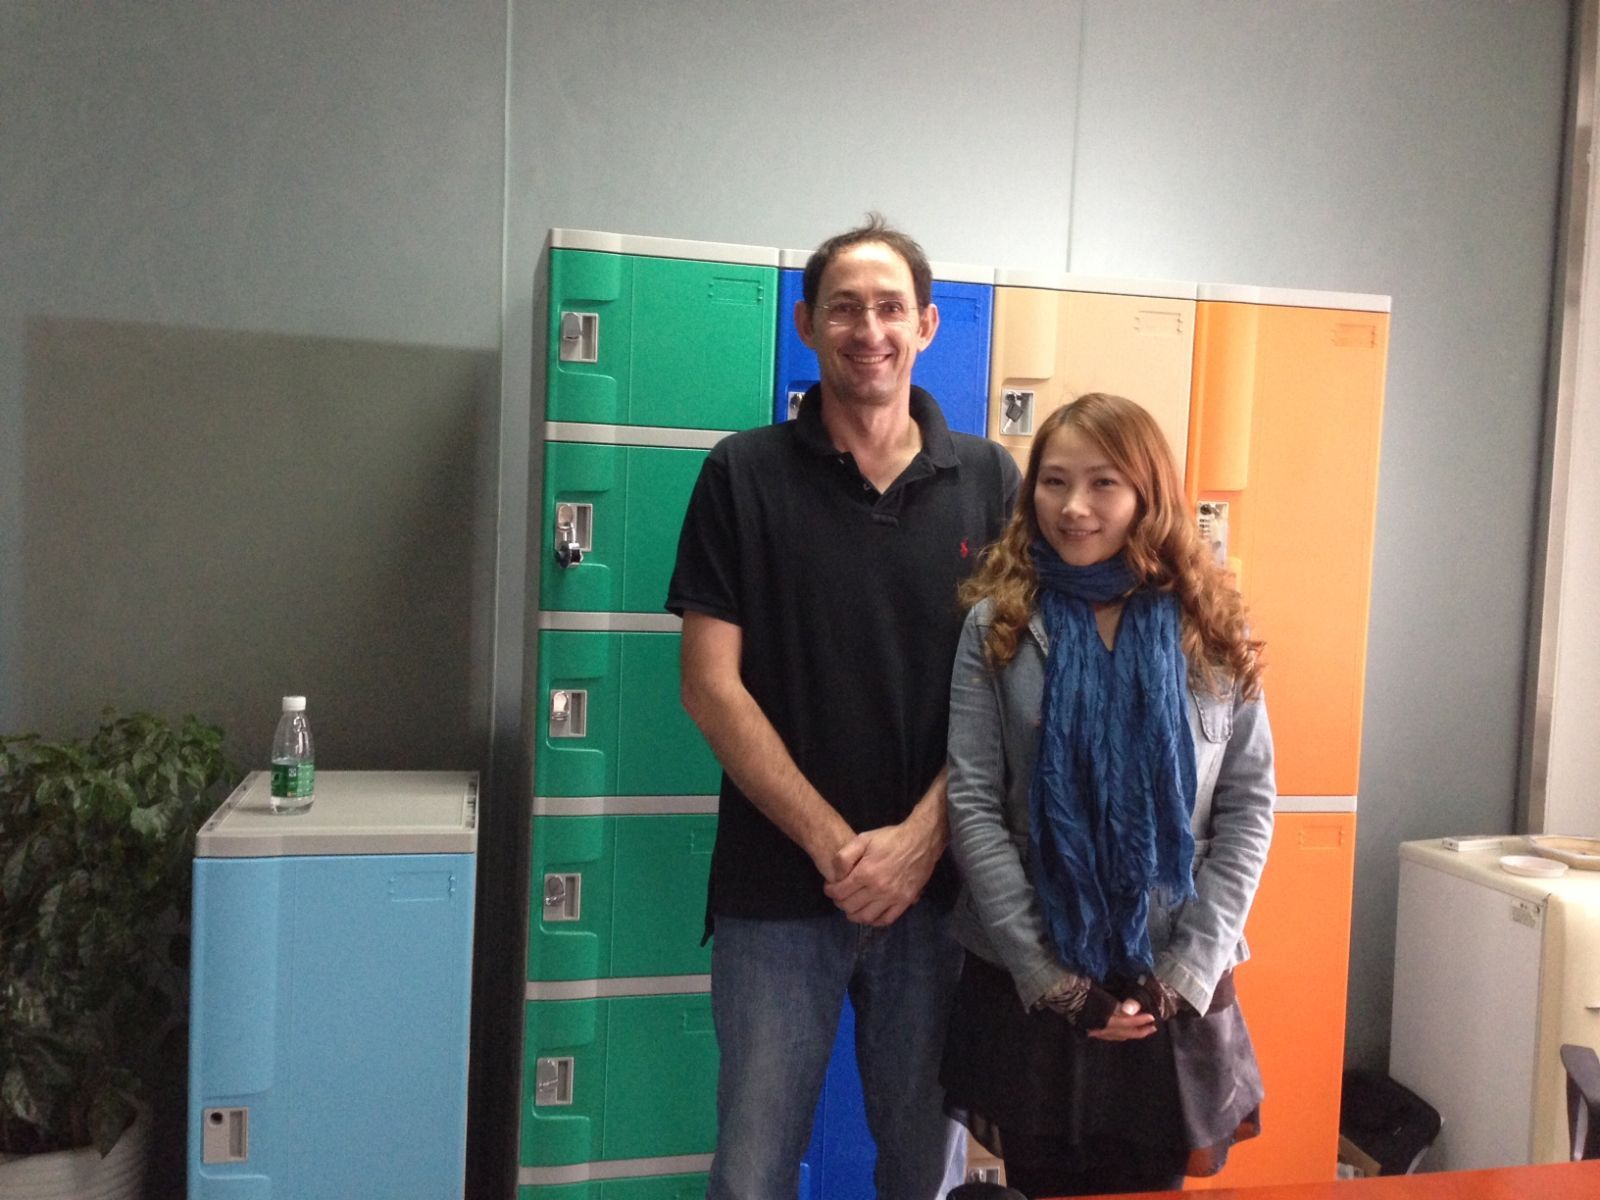 Australian Lockers Customer Visiting